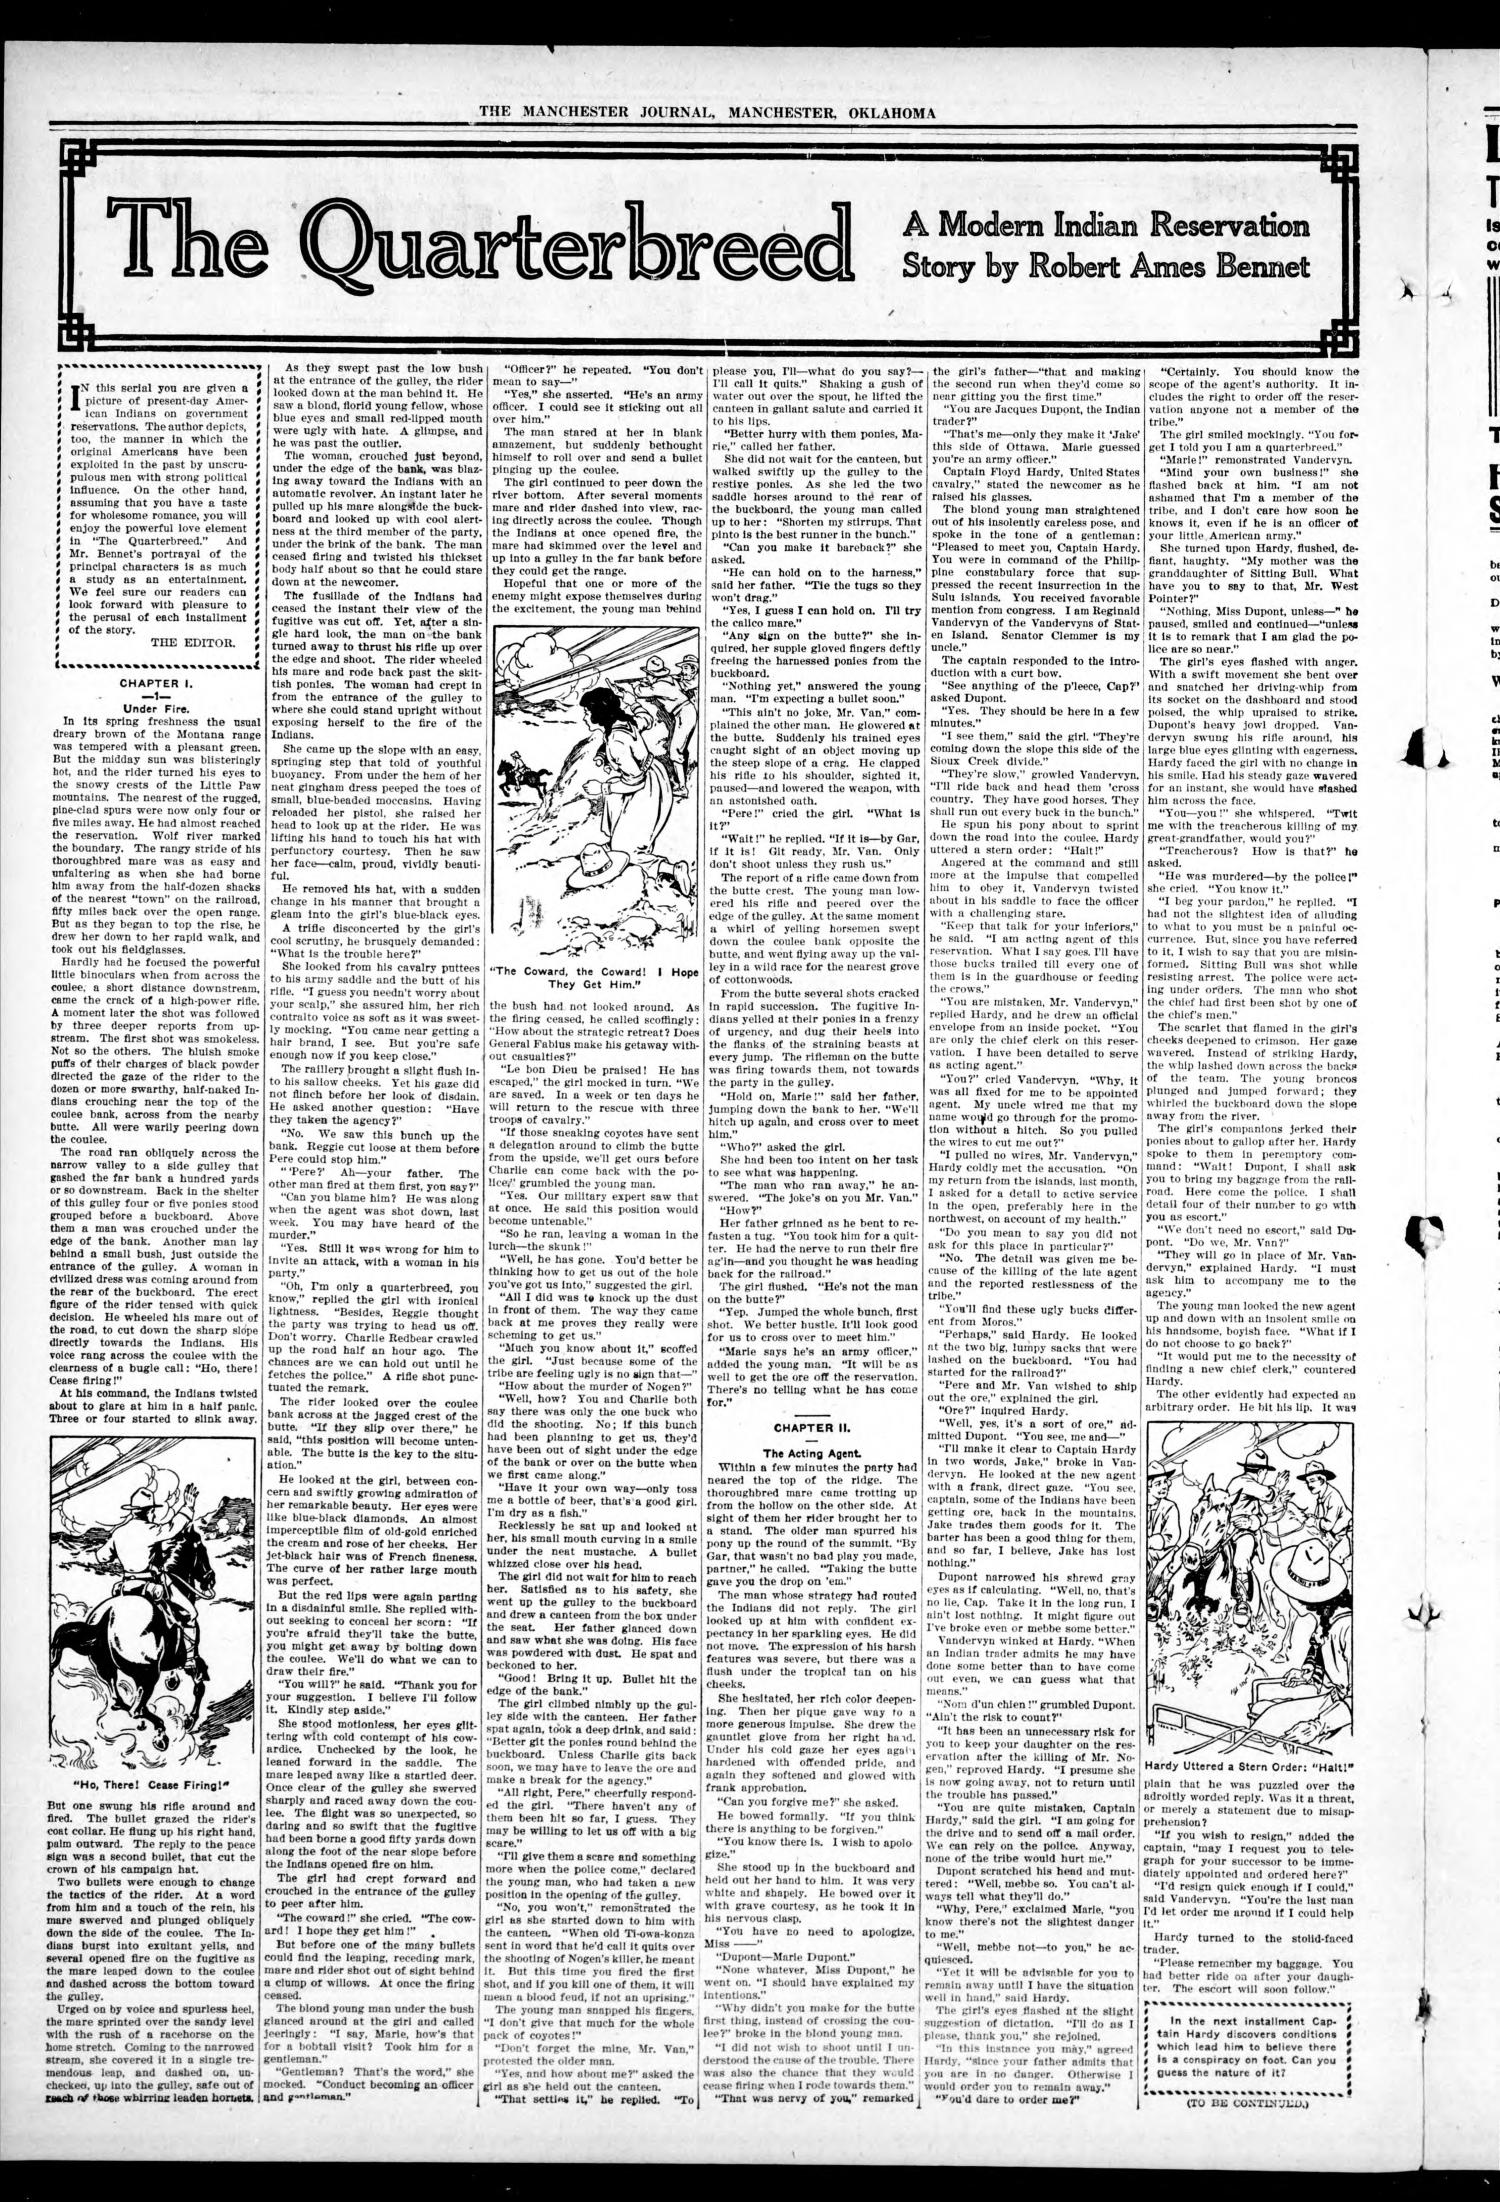 The Manchester Journal. (Manchester, Okla.), Vol. 24, No. 27, Ed. 1 Friday, December 1, 1916                                                                                                      [Sequence #]: 2 of 8